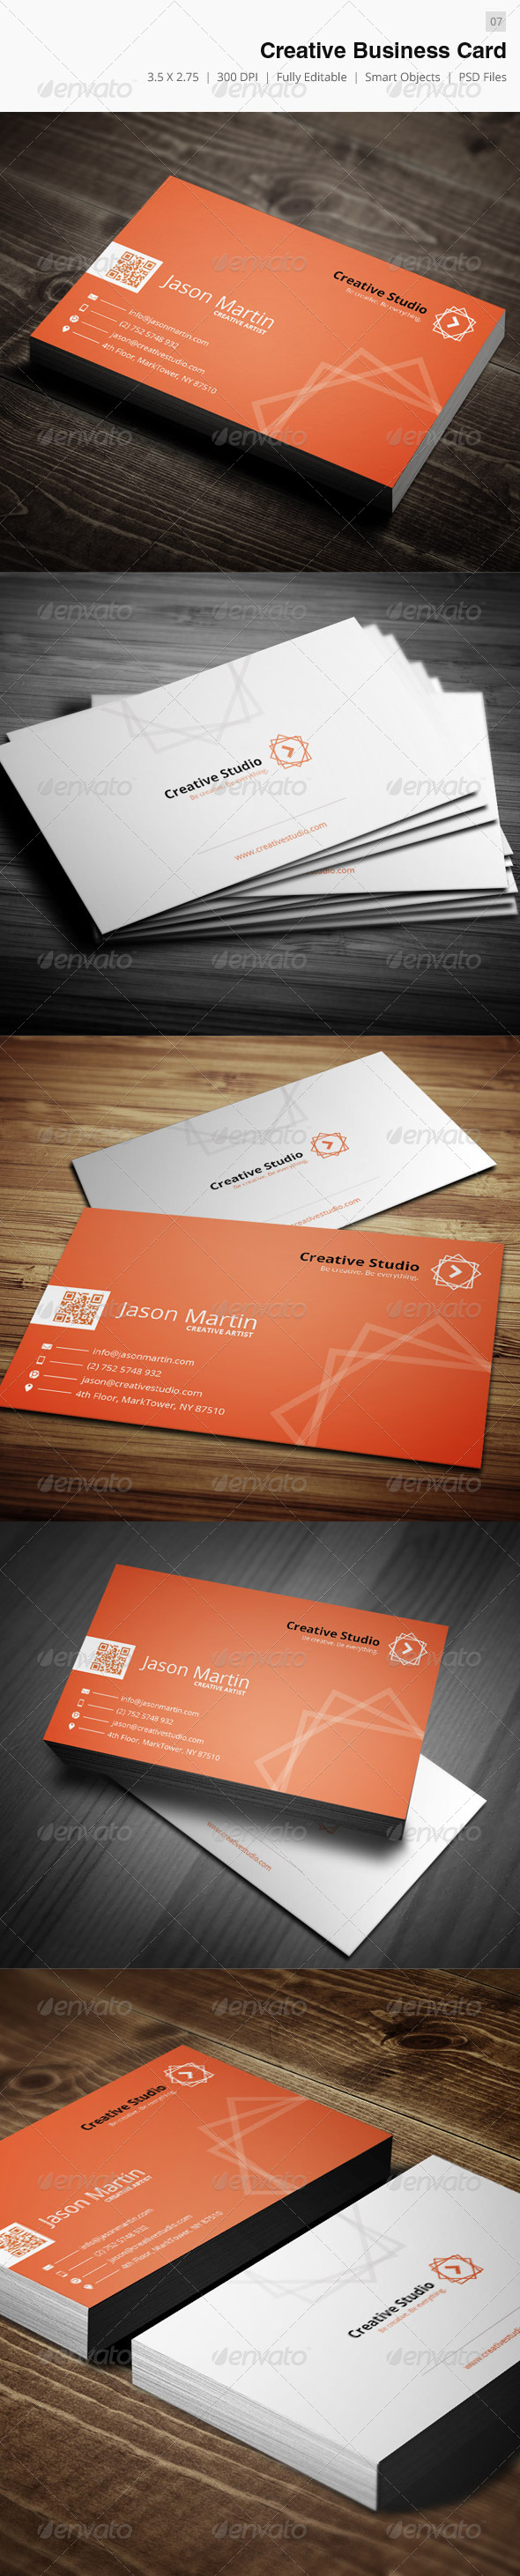 GraphicRiver Creative Corporate Business Card 07 4289413